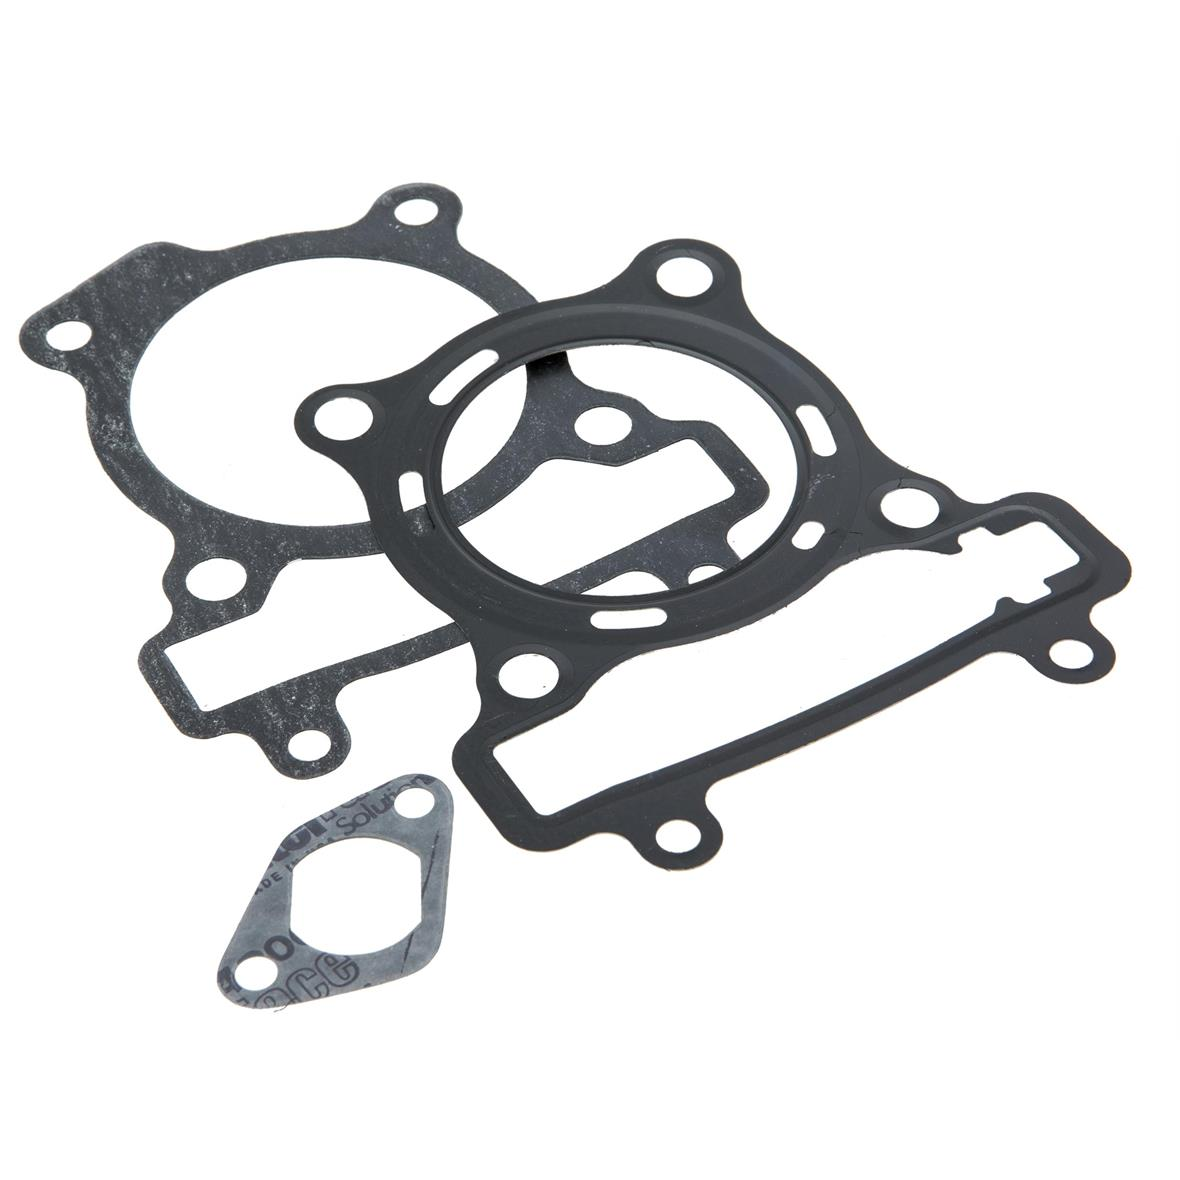 Product Image for 'Gasket Set Cylinder MALOSSI for M3114349/M3114443/M3114851/M3113214Title'